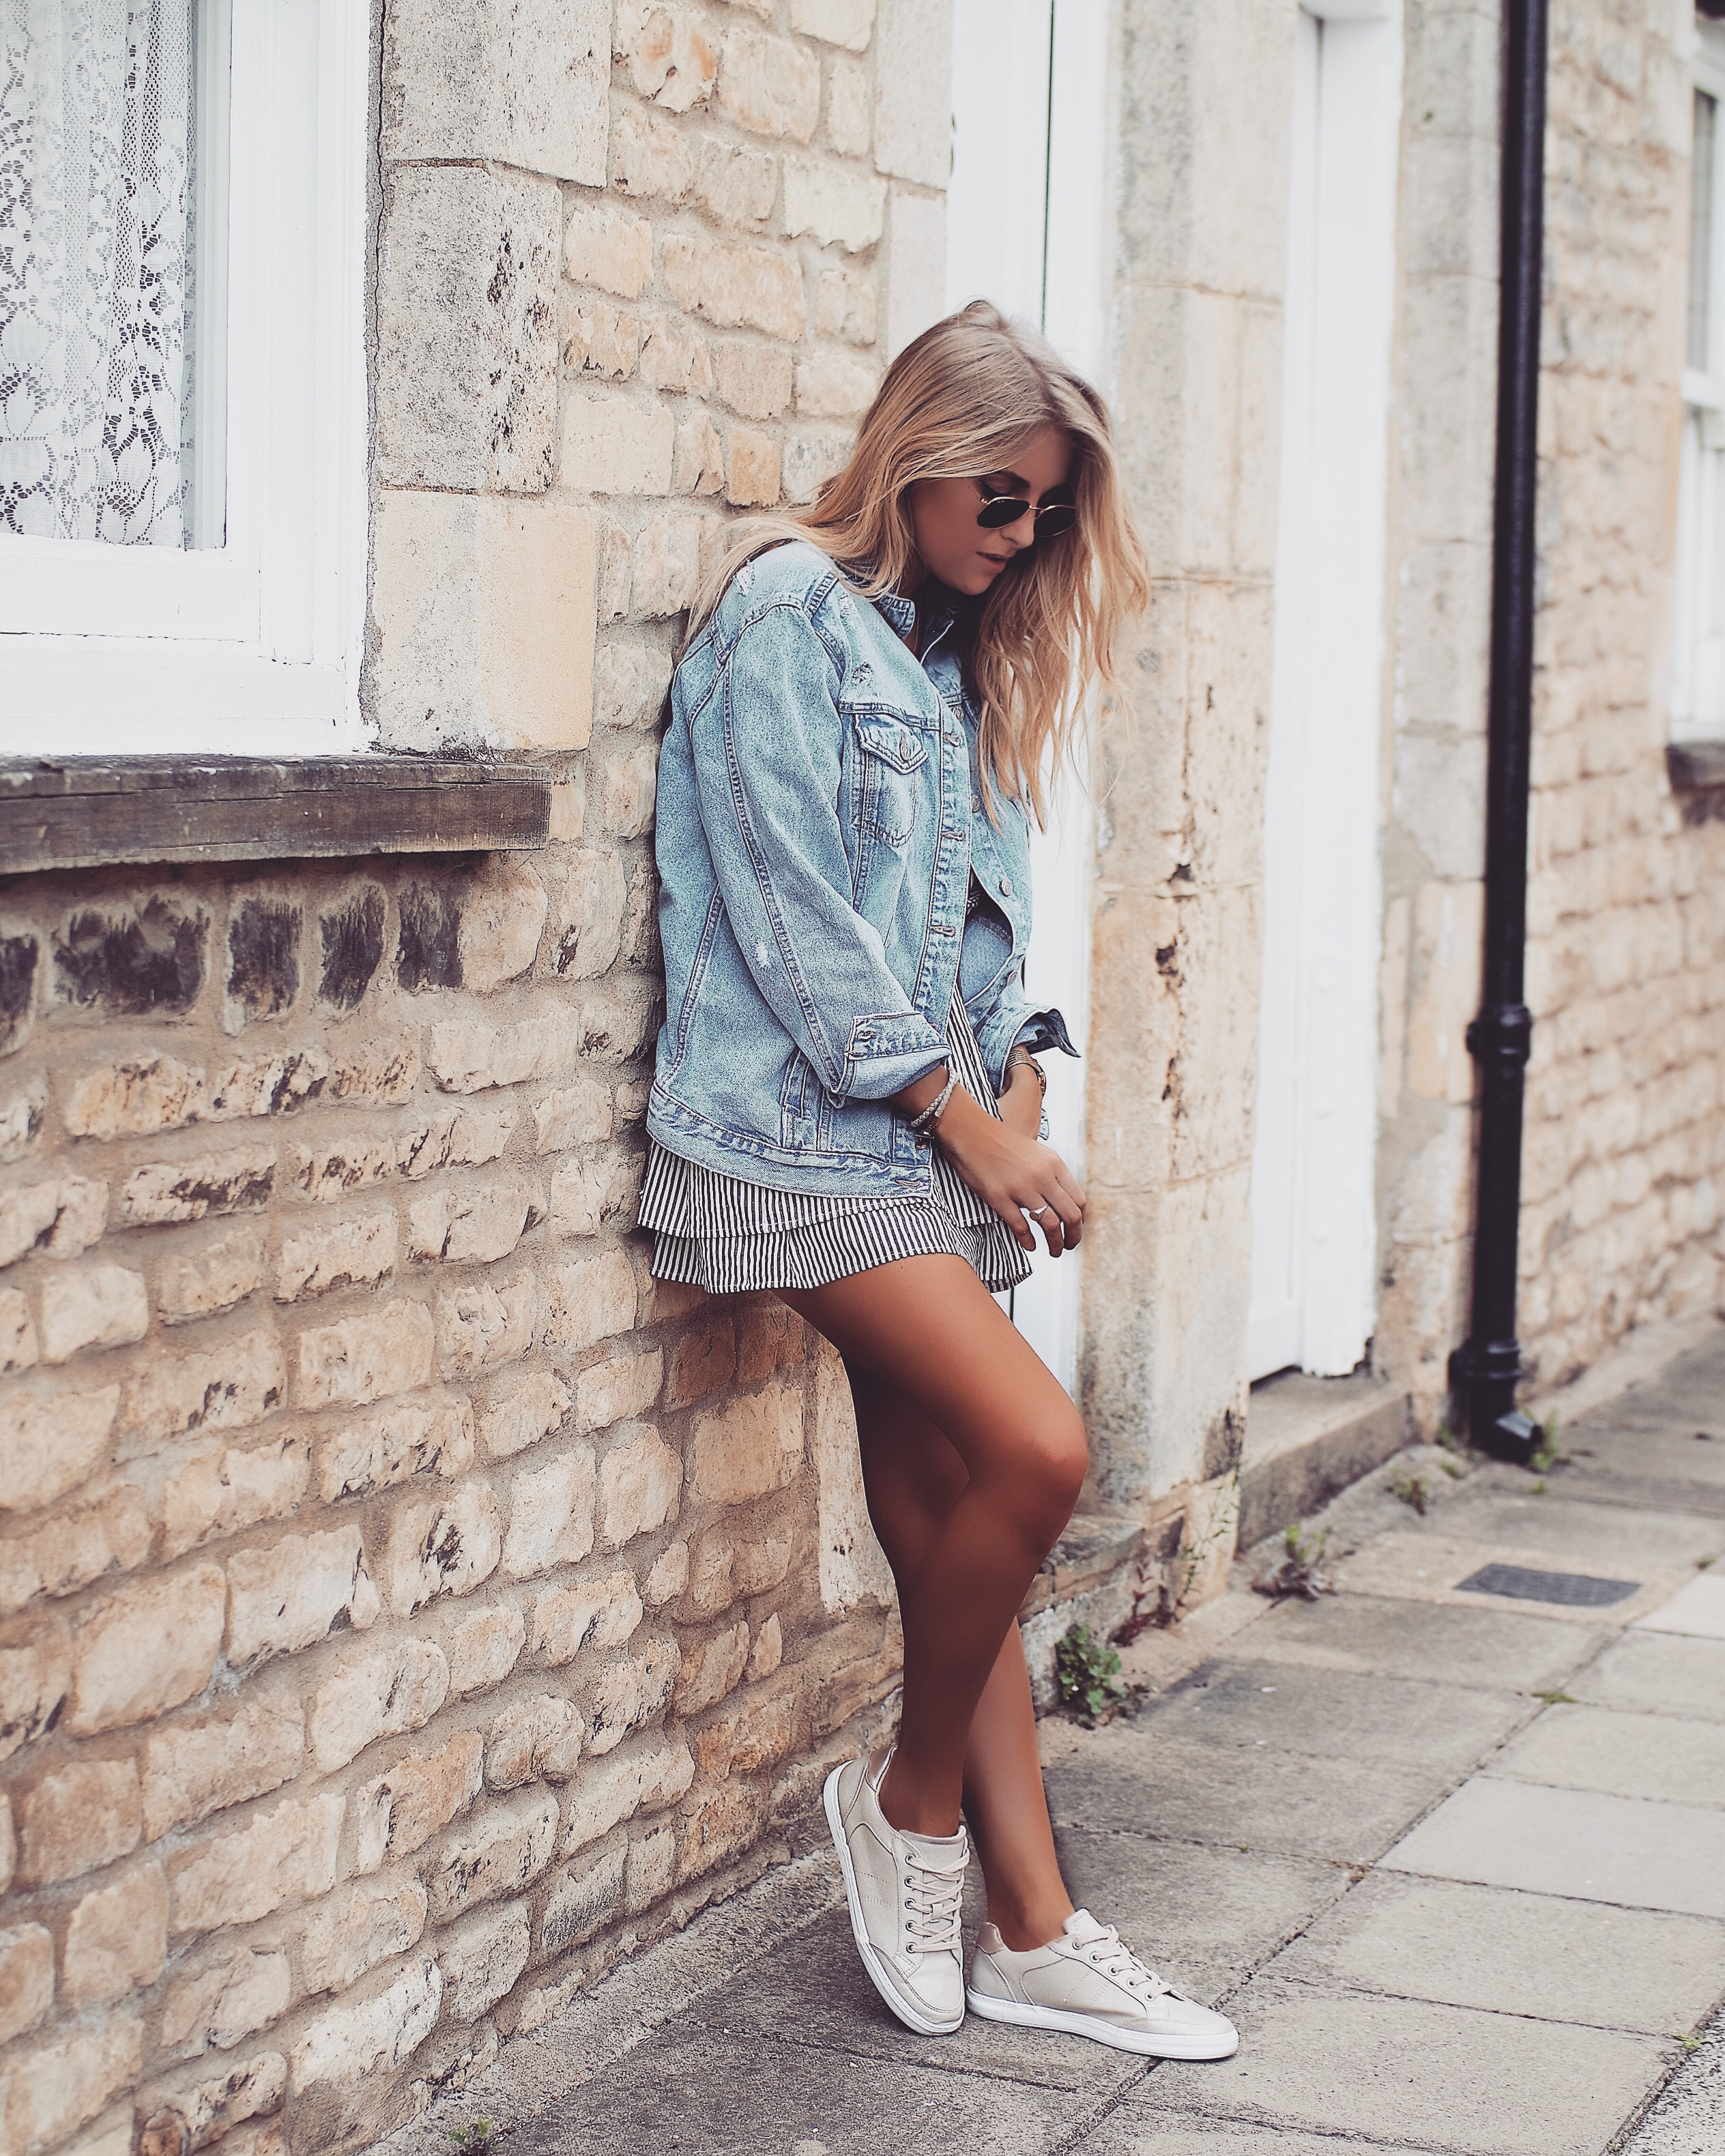 Festival Look - Distressed Denim Jacket